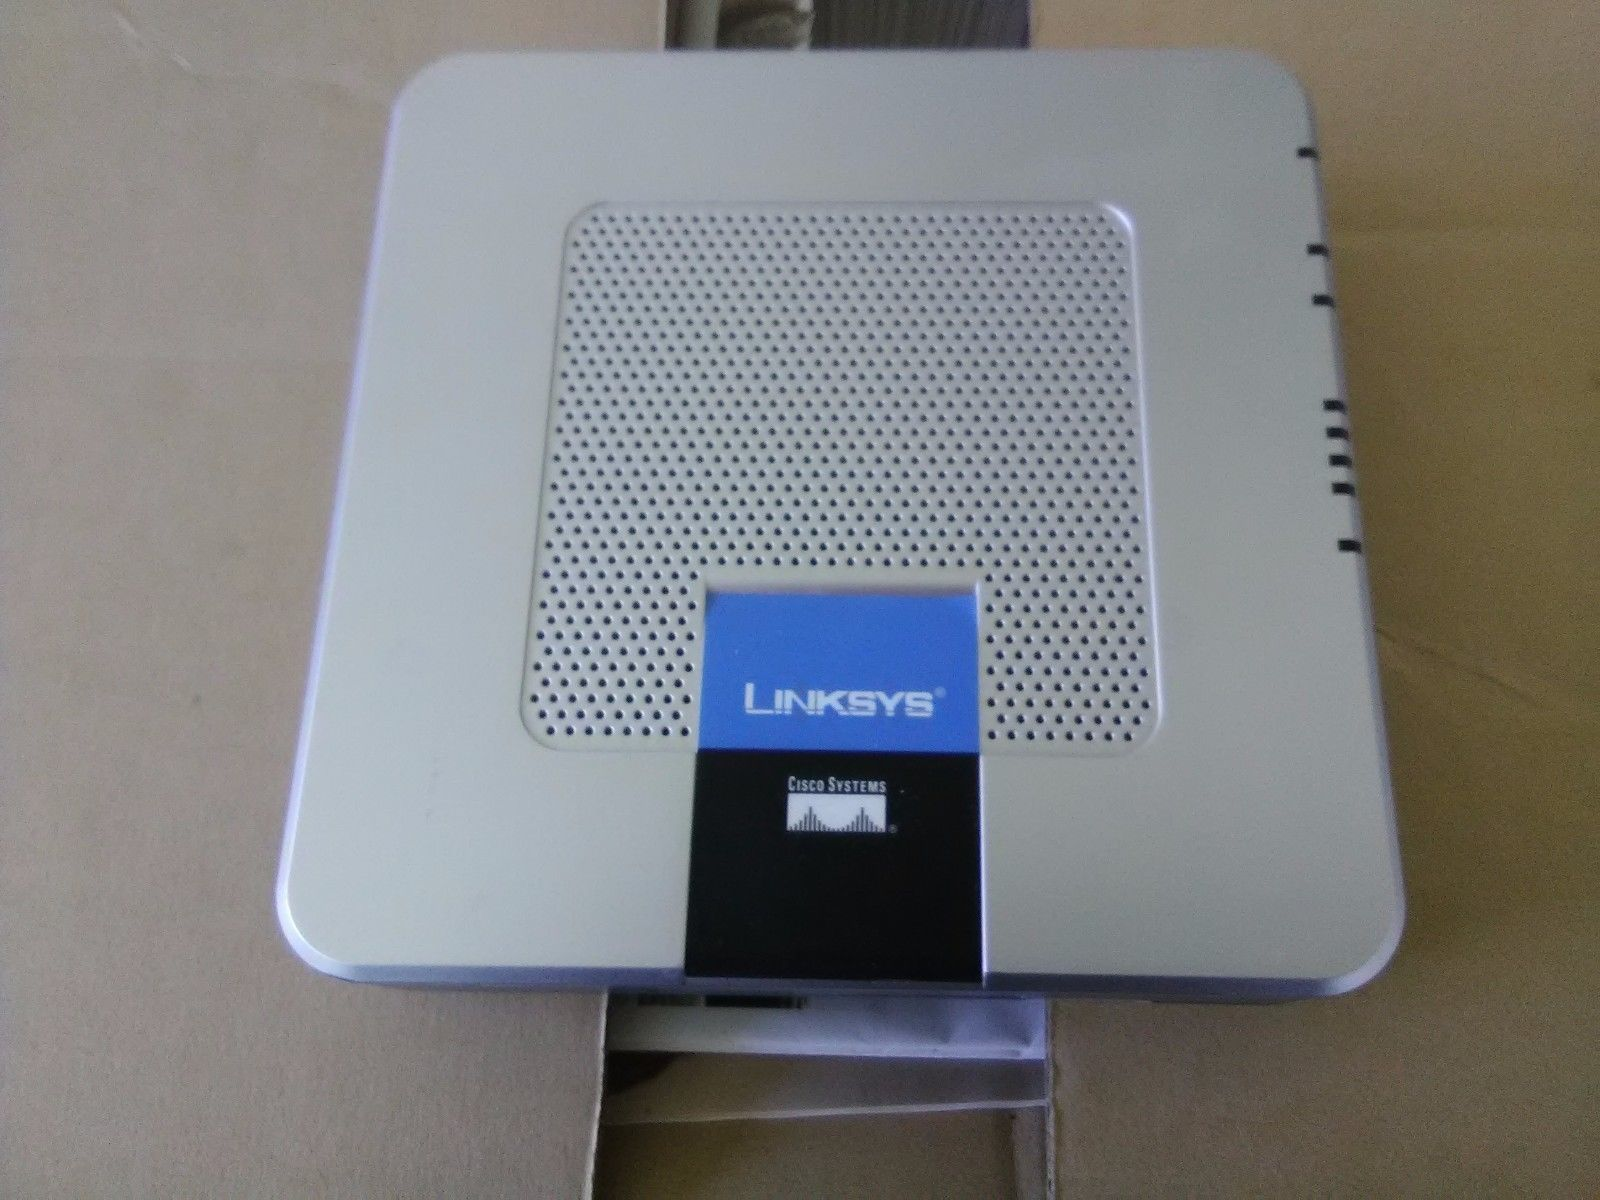 Linksys RTP300 1-Port 10/100 Wired Router and 50 similar items